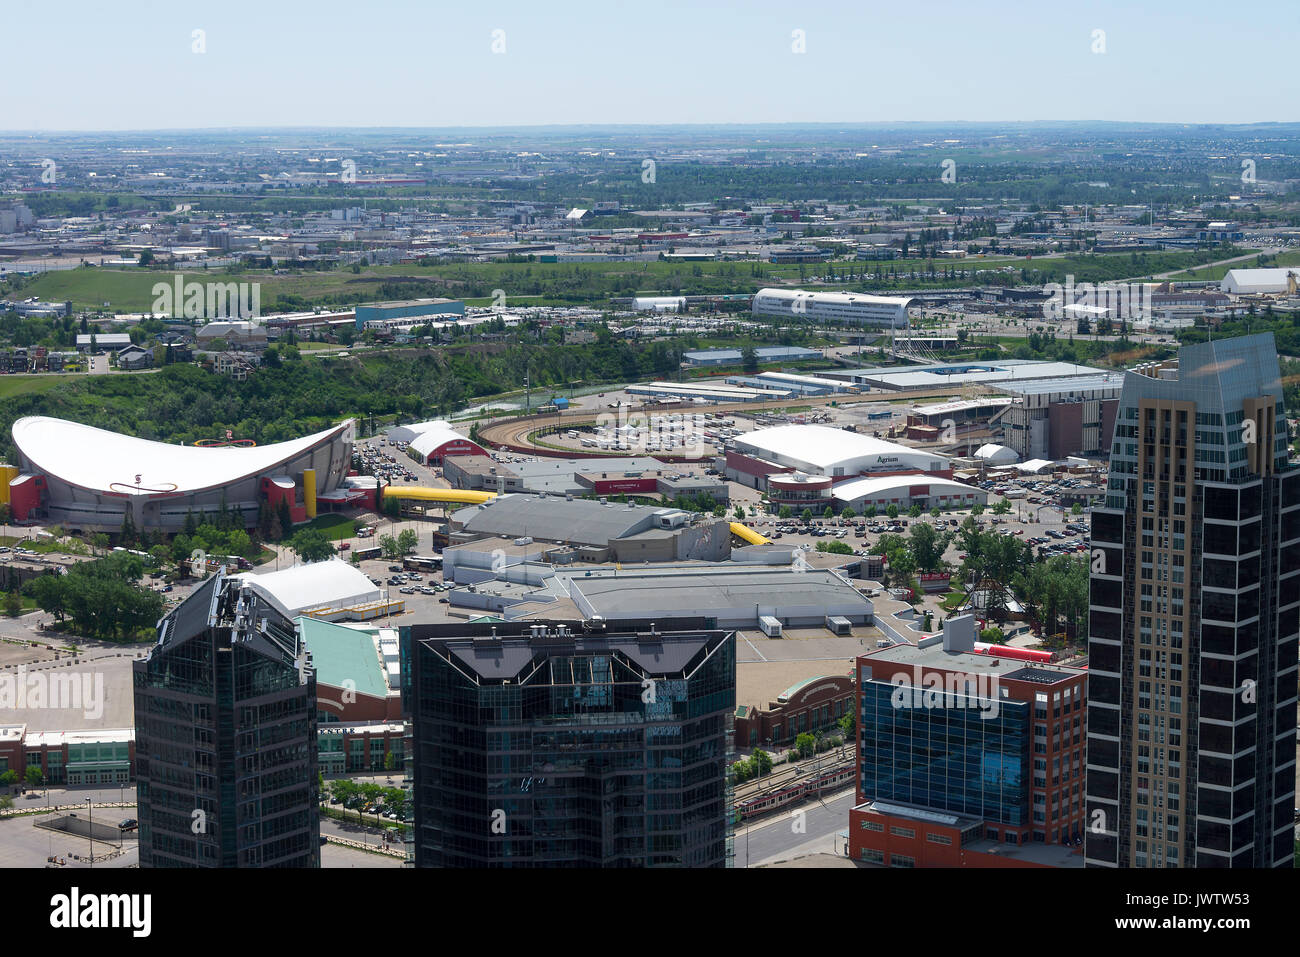 The Aerial View Towards The Calgary Stampede Showground and Saddledome from The Calgary Tower Alberta Canada - Stock Image